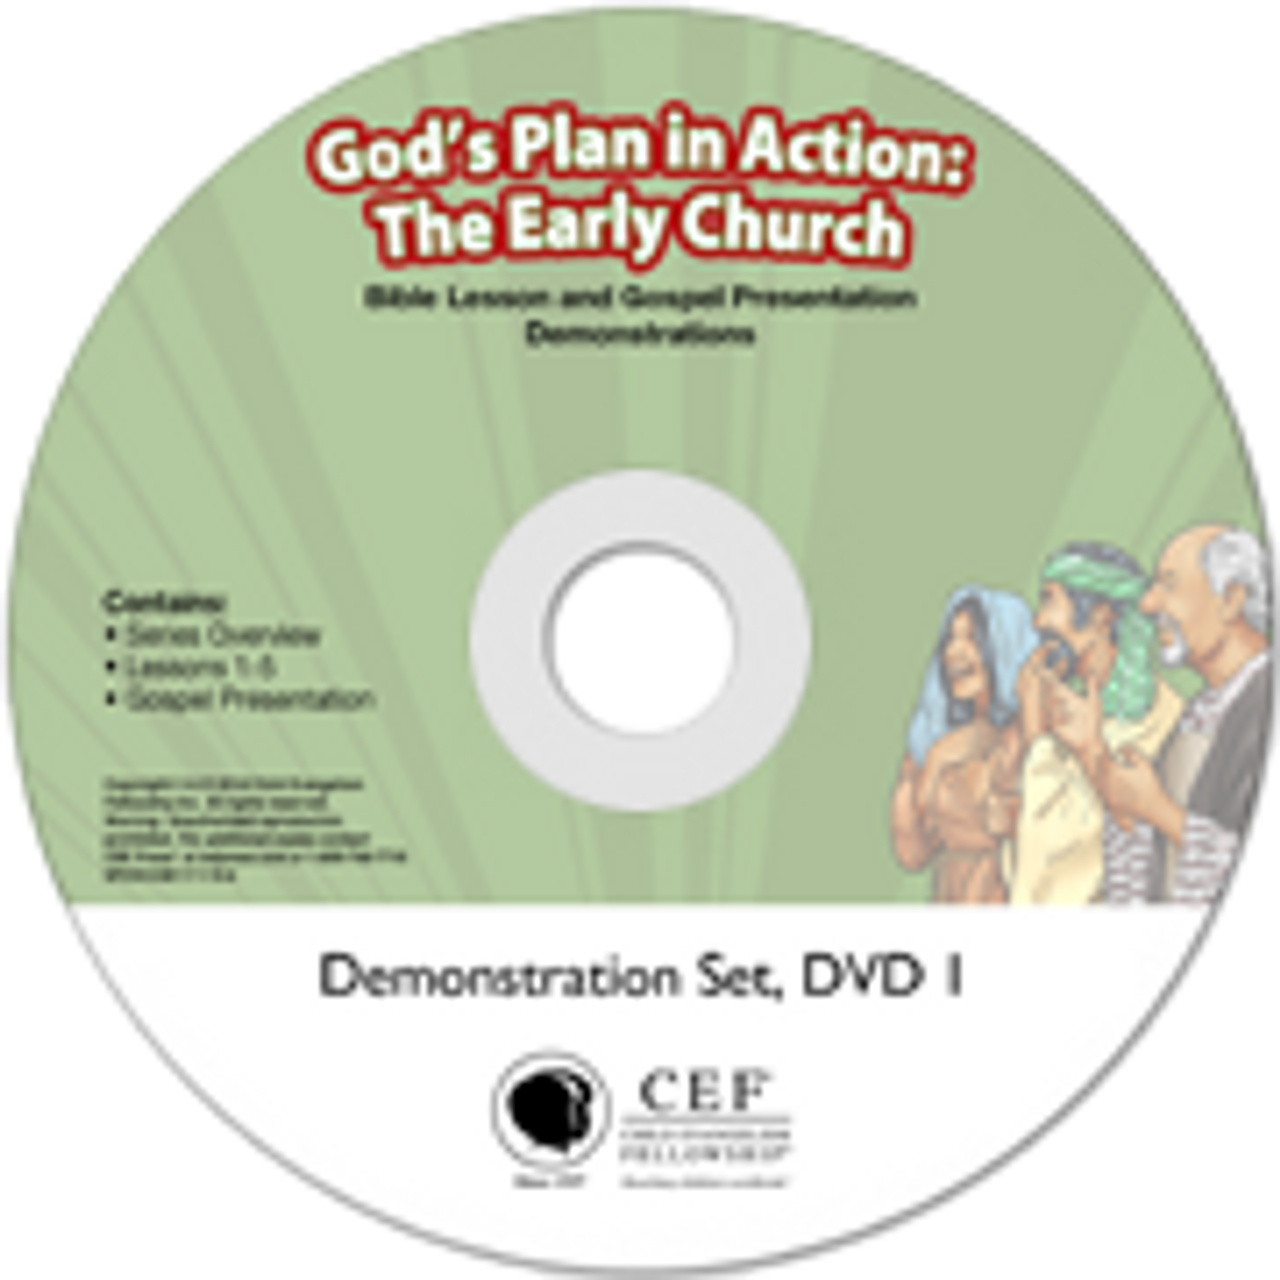 God's Plan in Action: The Early Church (demo) 2017